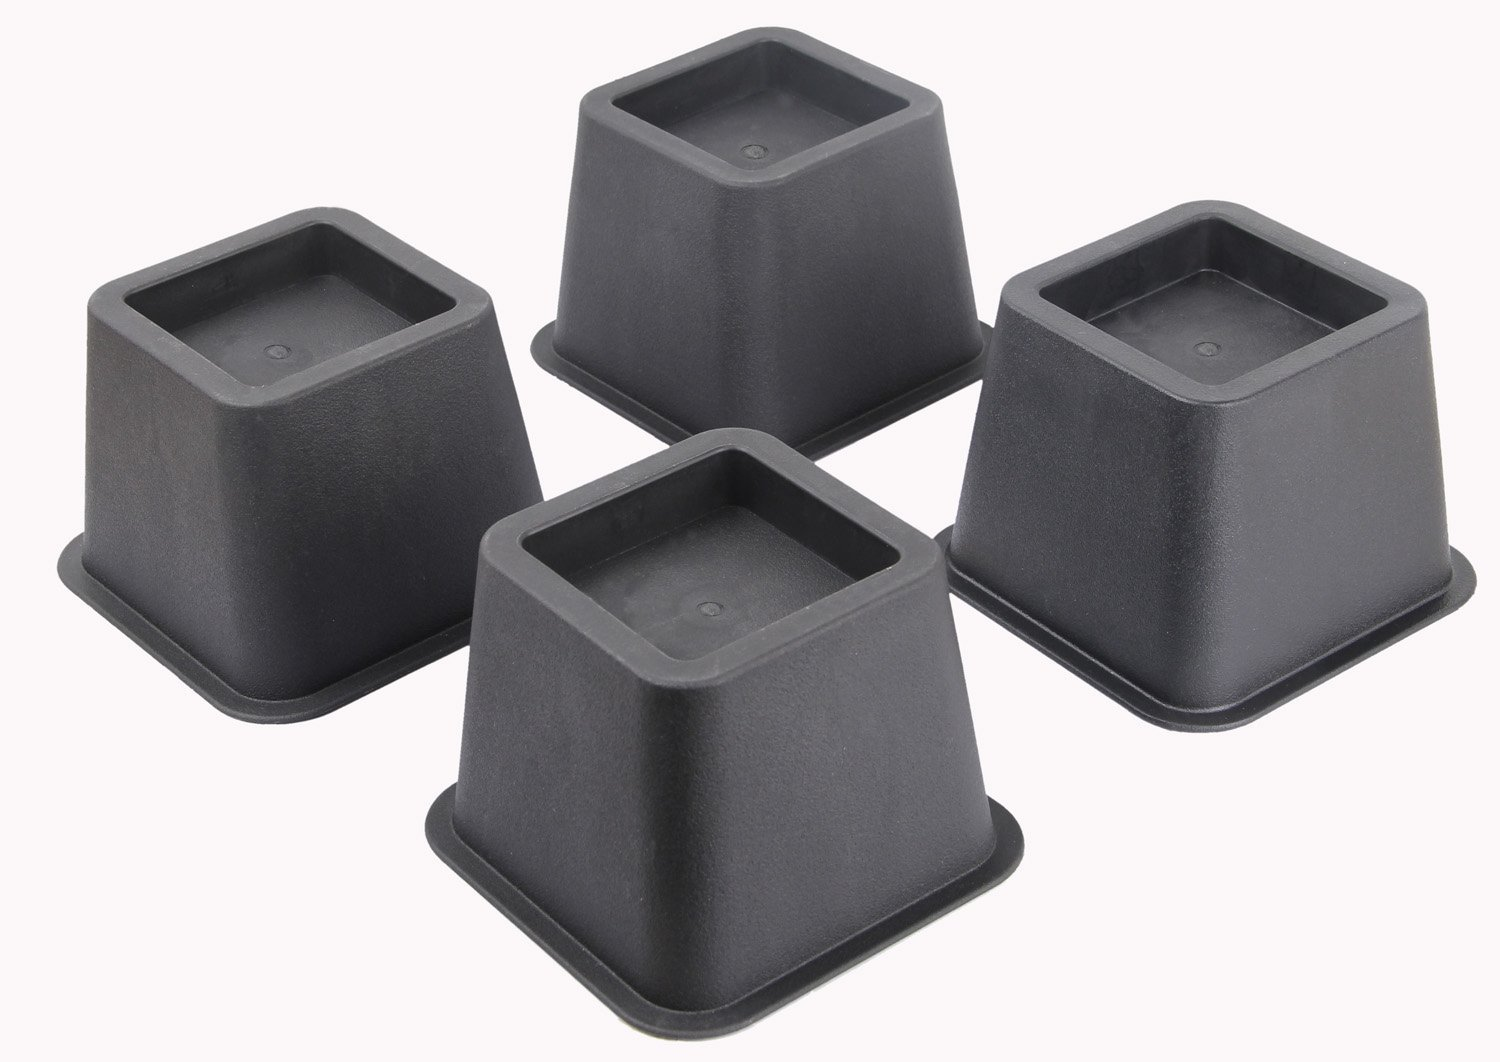 Amazon.com: EASYGOING 4-pack 3 Inch Height Bed Risers, Furniture ...